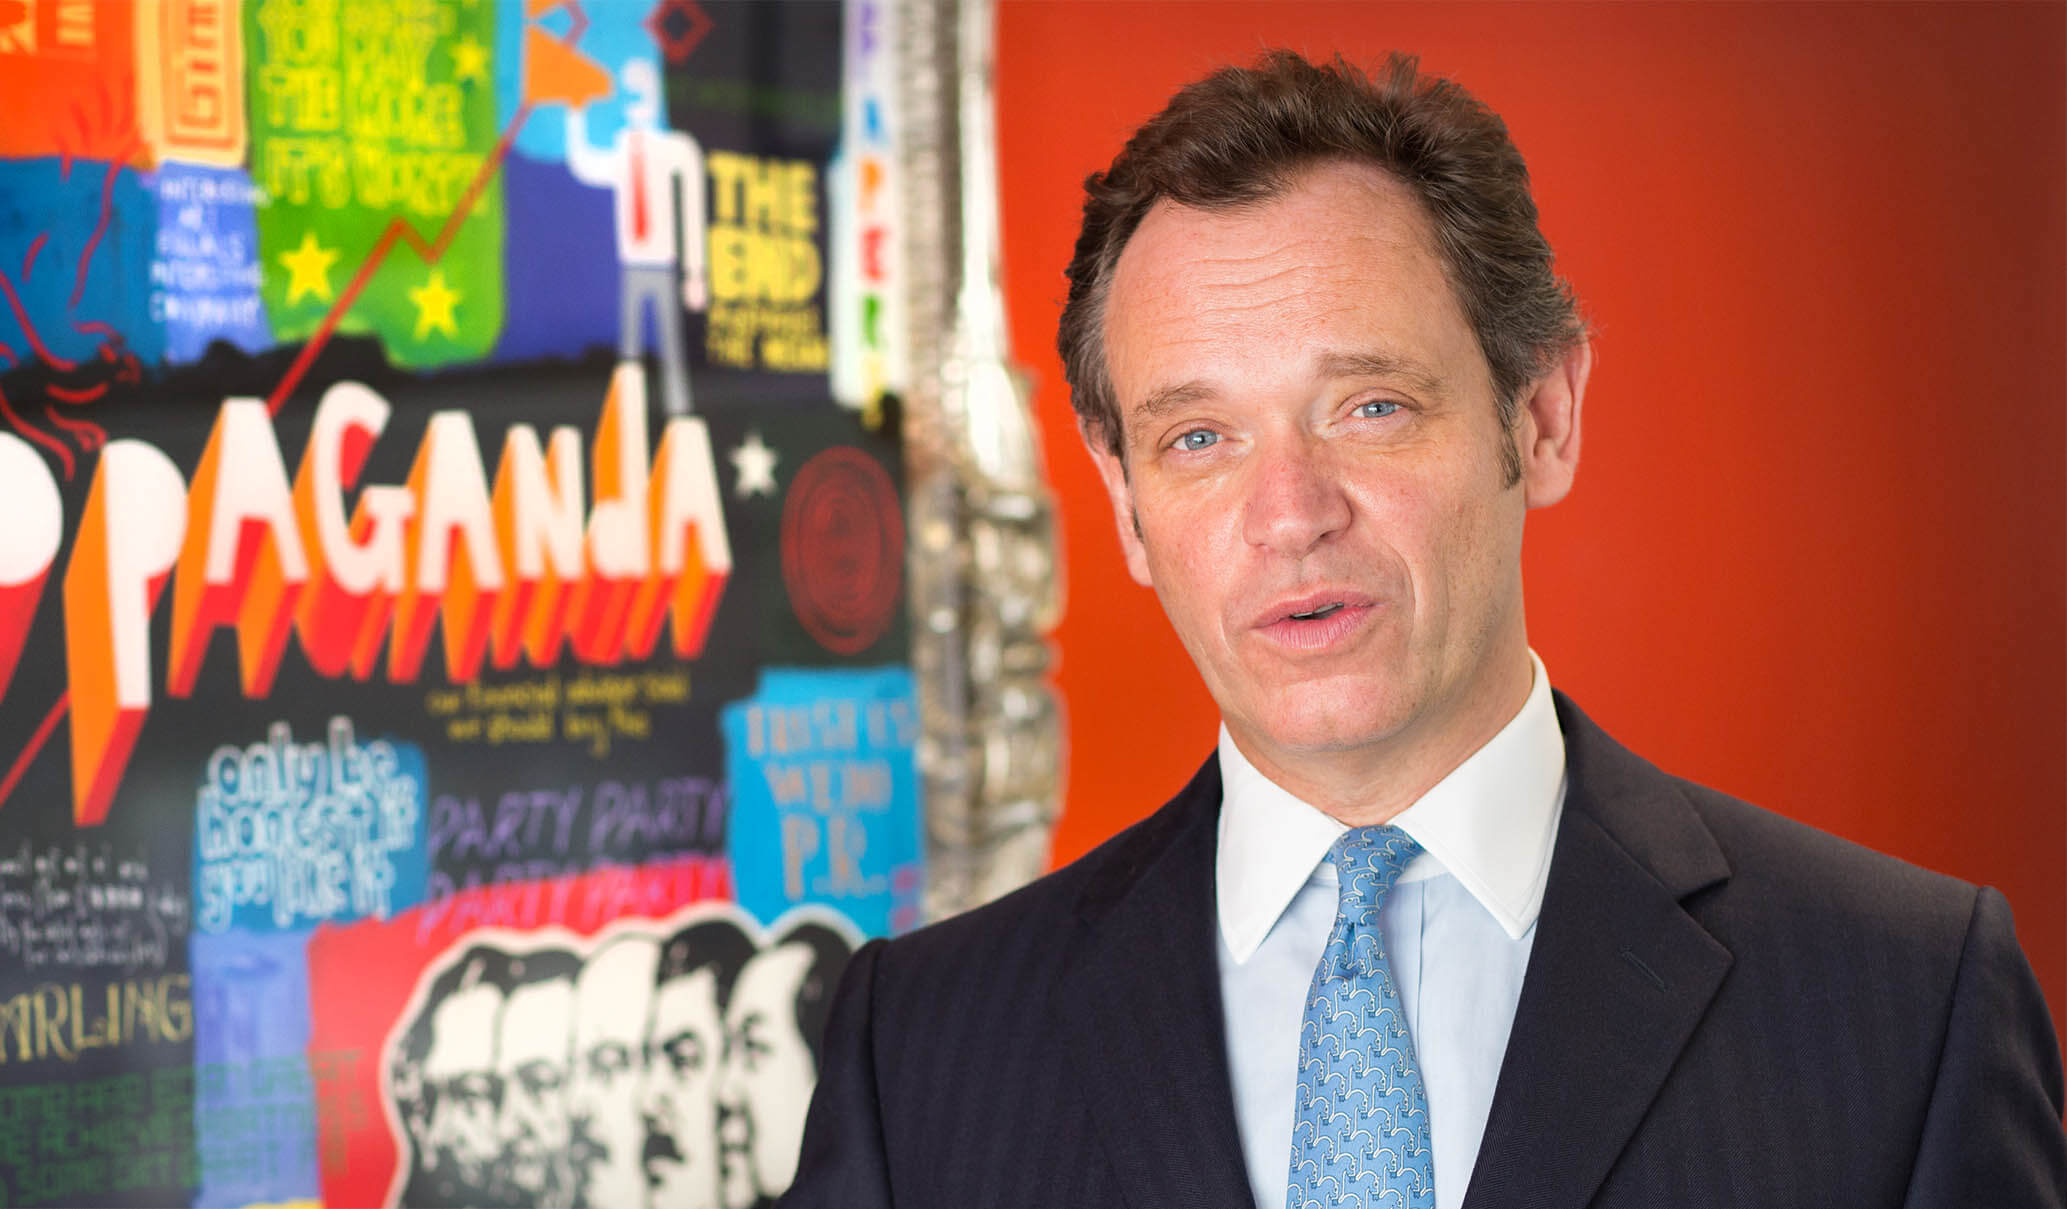 Image of Anthony Payne, CEO at Peregrine Communications